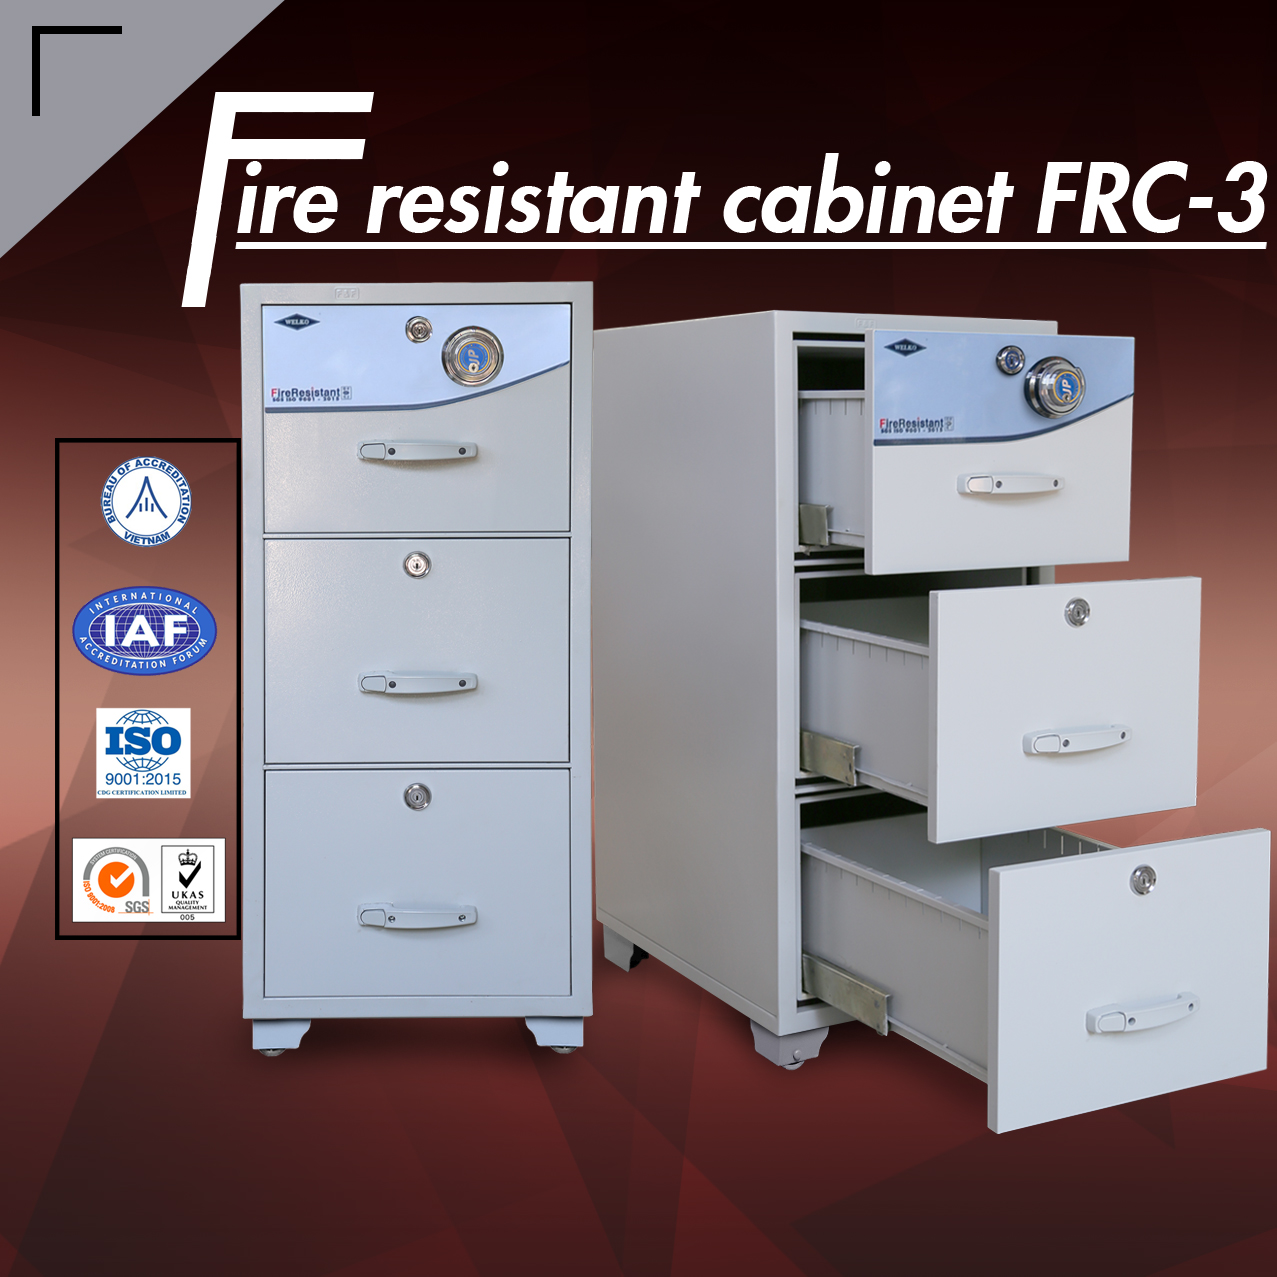 fire resistant cabinet high quality - FRC 3